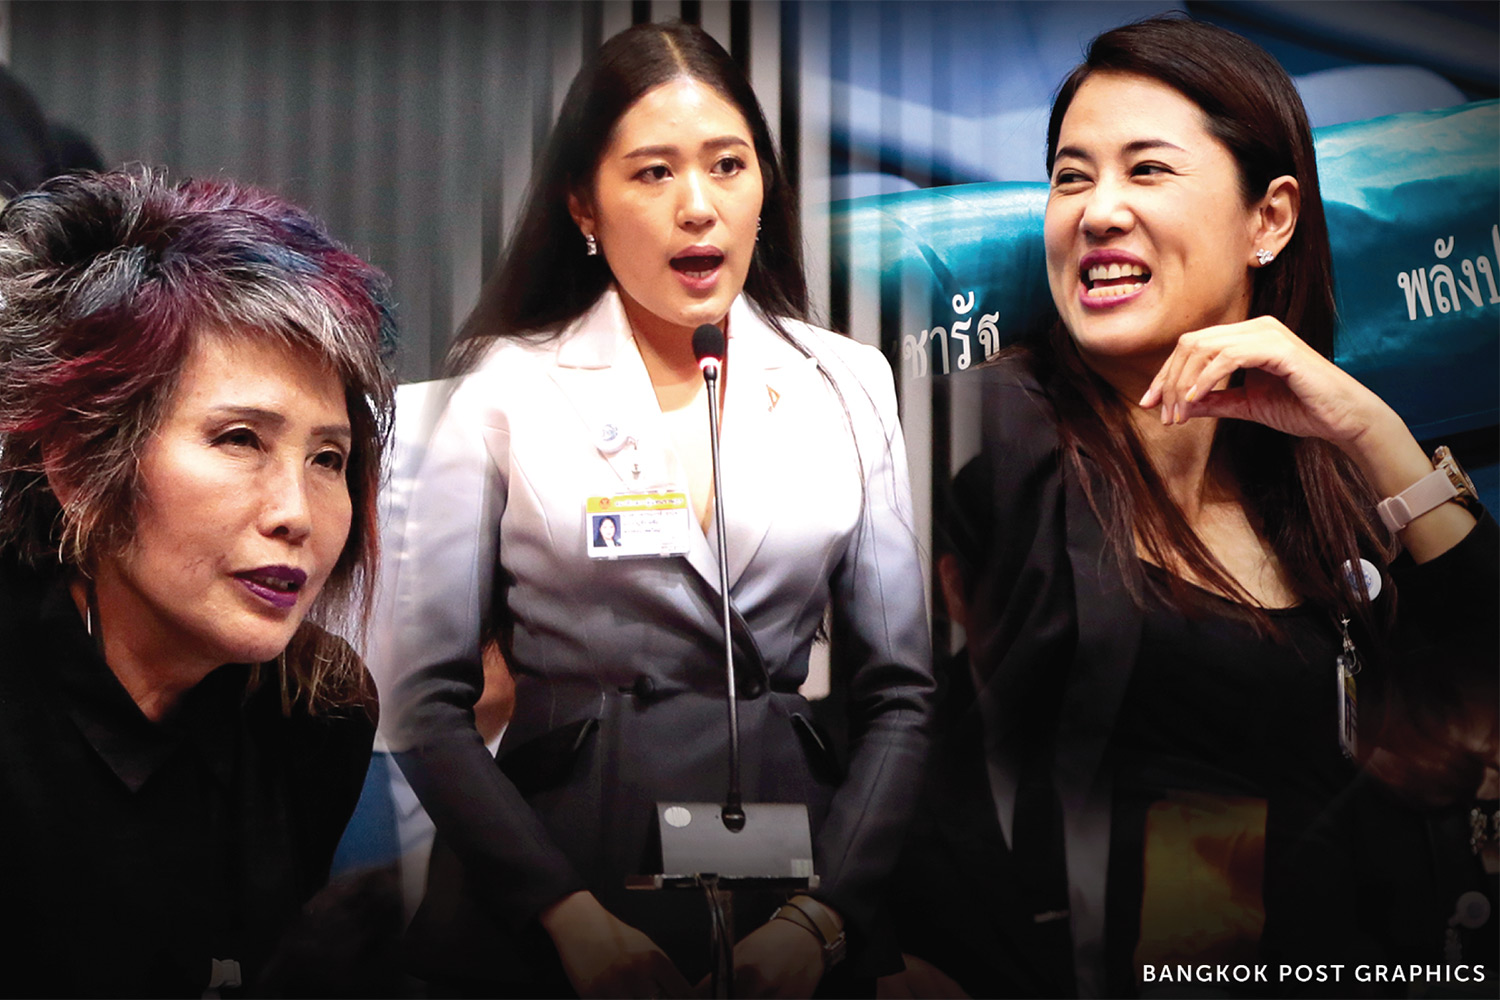 Future Forward Party spokeswoman and MP Pannika Wanich, centre, has become the subject of an anti-monarchy witch-hunt stemming from spats with regime-appointed Senator Porntip Rojanasunan, left, and MP Parina Kraikup, right.